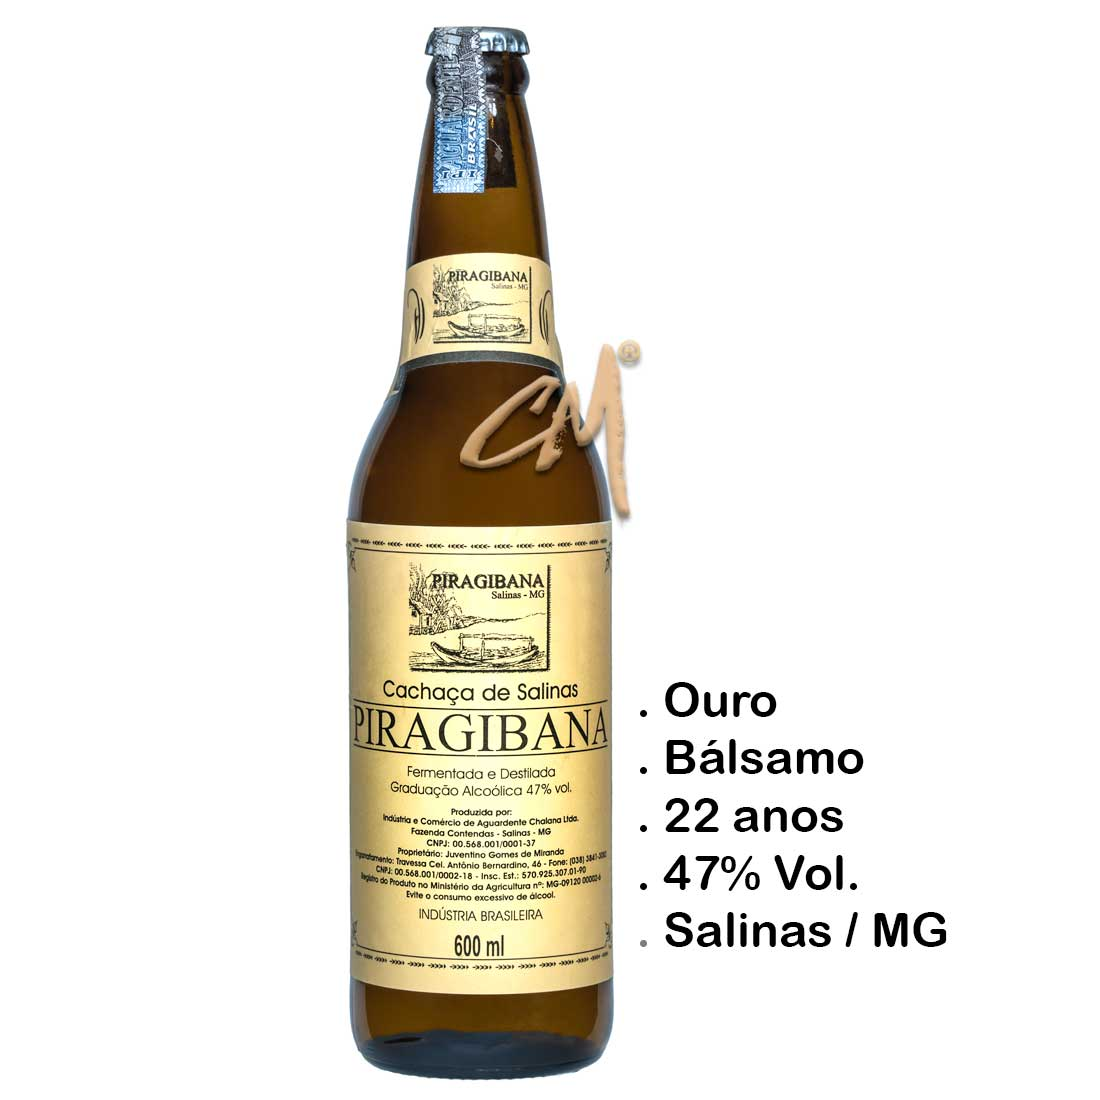 Cachaça Piragibana 600 ml (Salinas - MG)